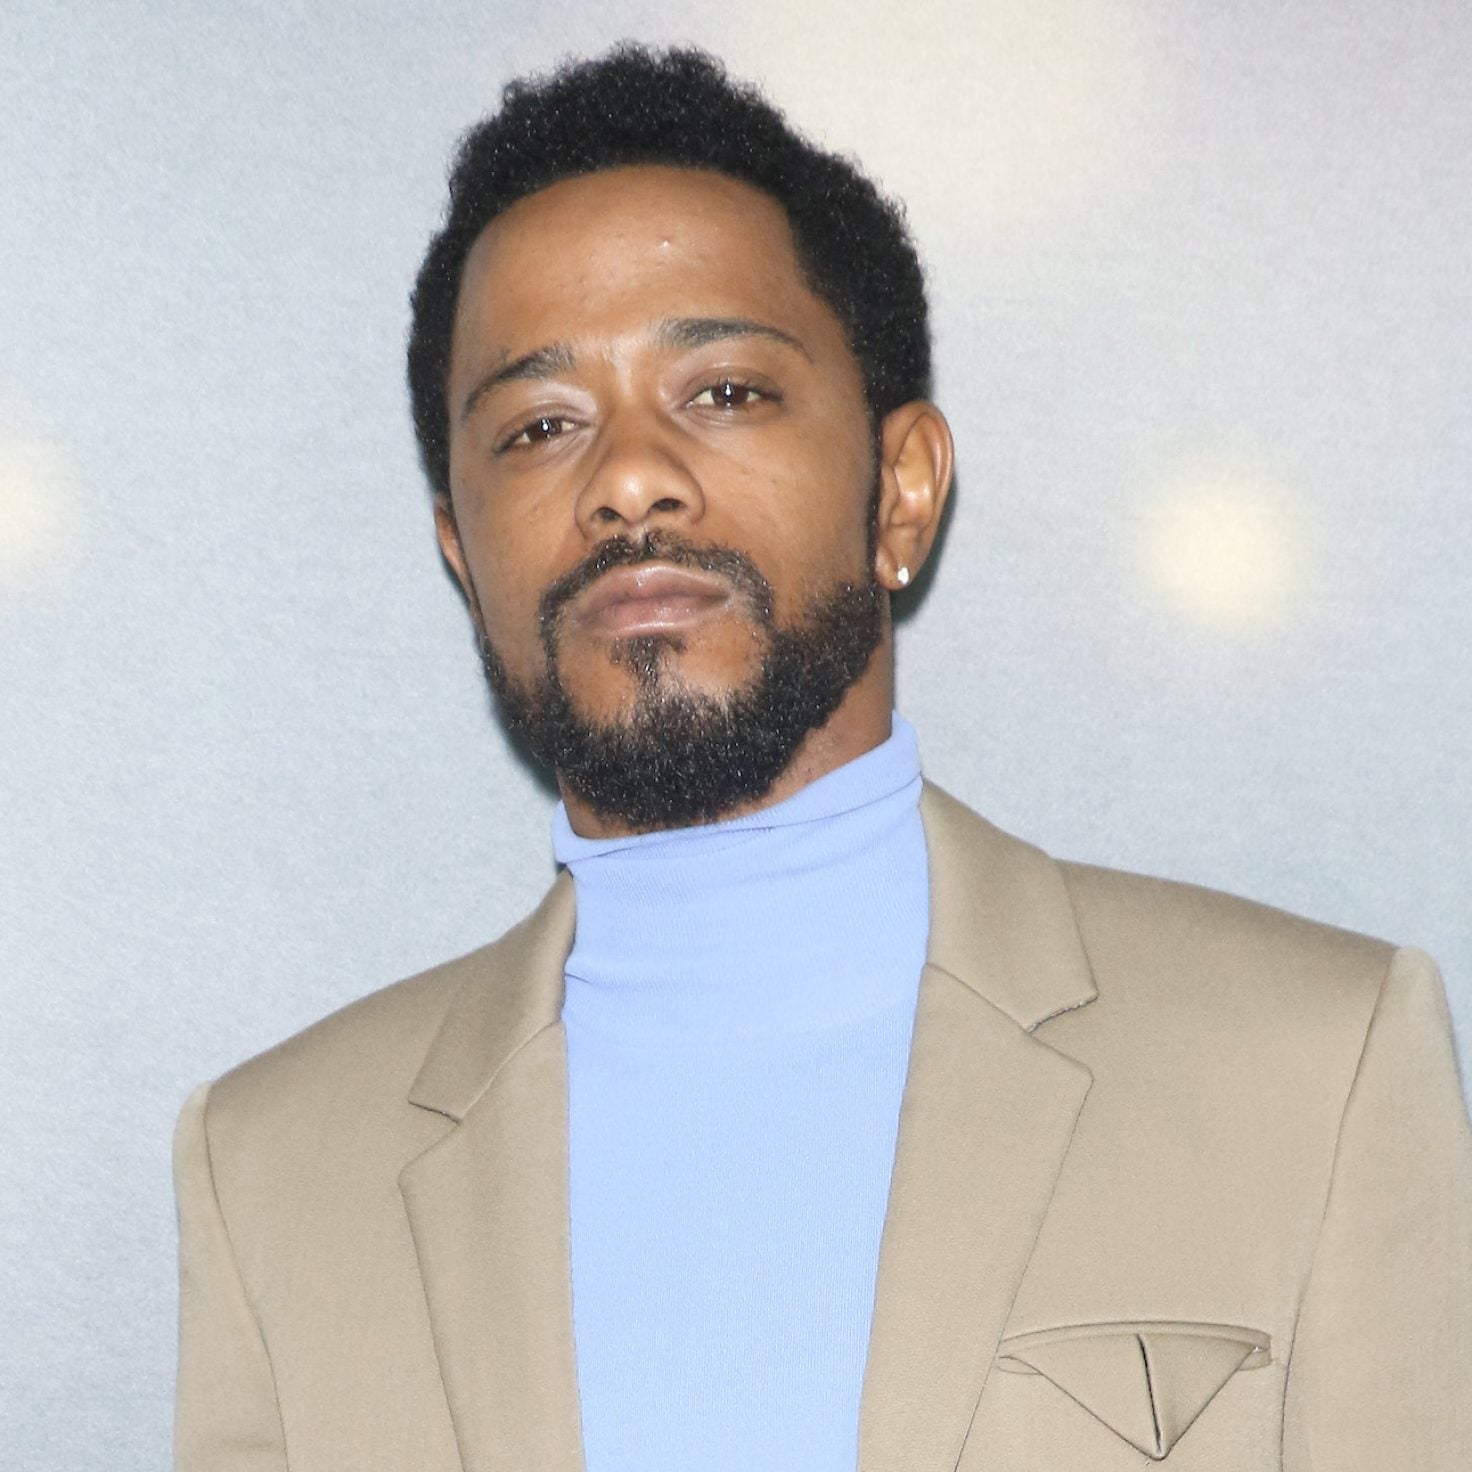 Rihanna Returns And LaKeith Stanfield Drops The New Video For 'Fast Life'